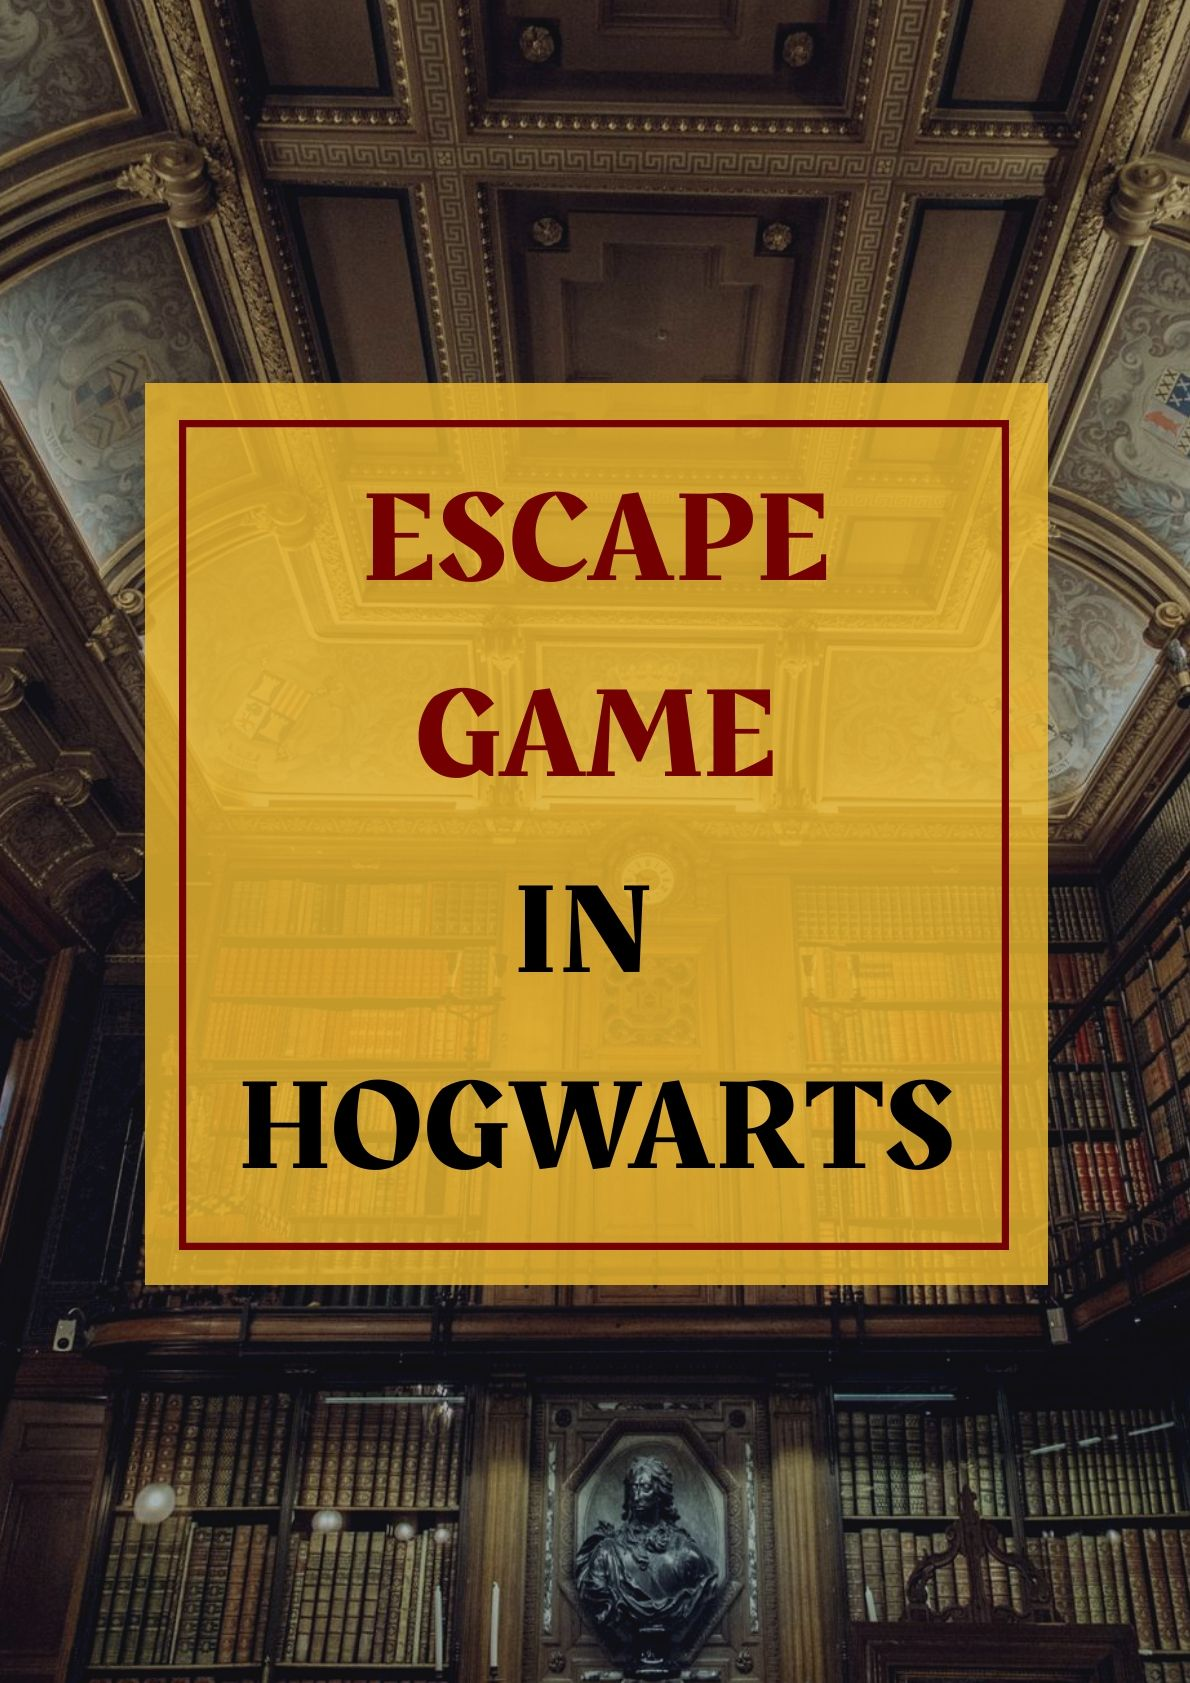 Take your broom to Hogwarts in an Escape Game Harry